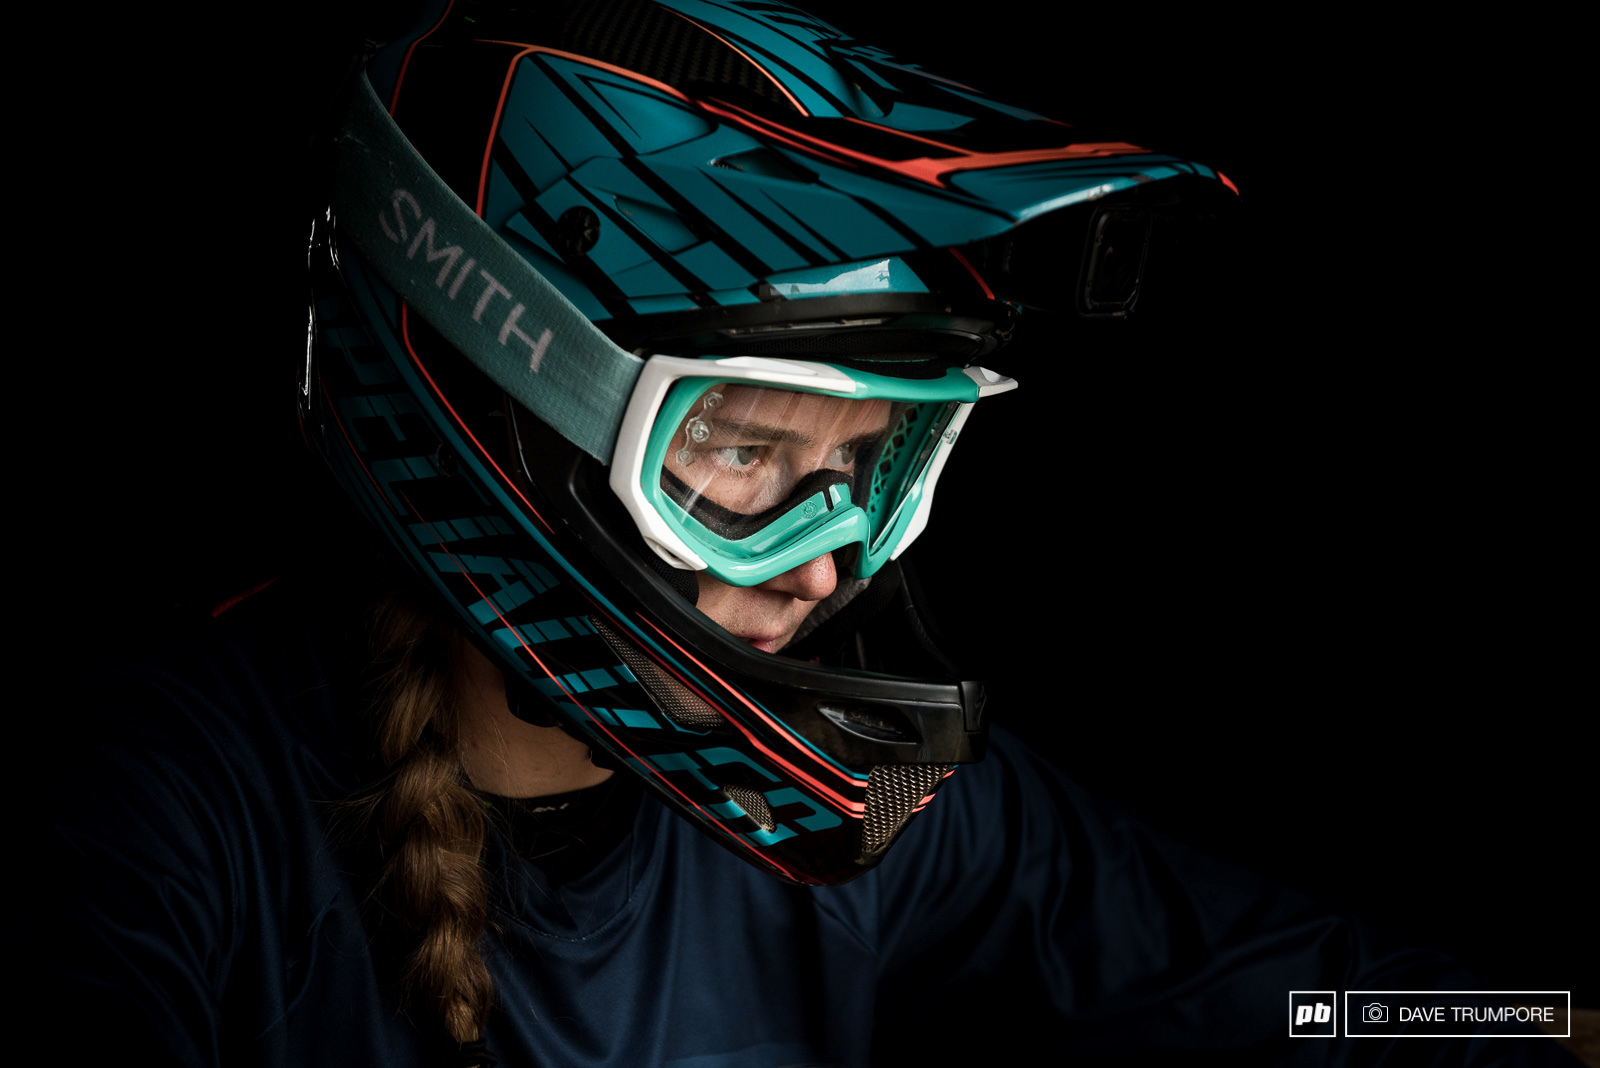 We do hope Miranda Miller gets to more World Cups this year and in the years to come. After a podium at her last race in Leogang she qualified 3rd in MSA and might just play the spoiler.